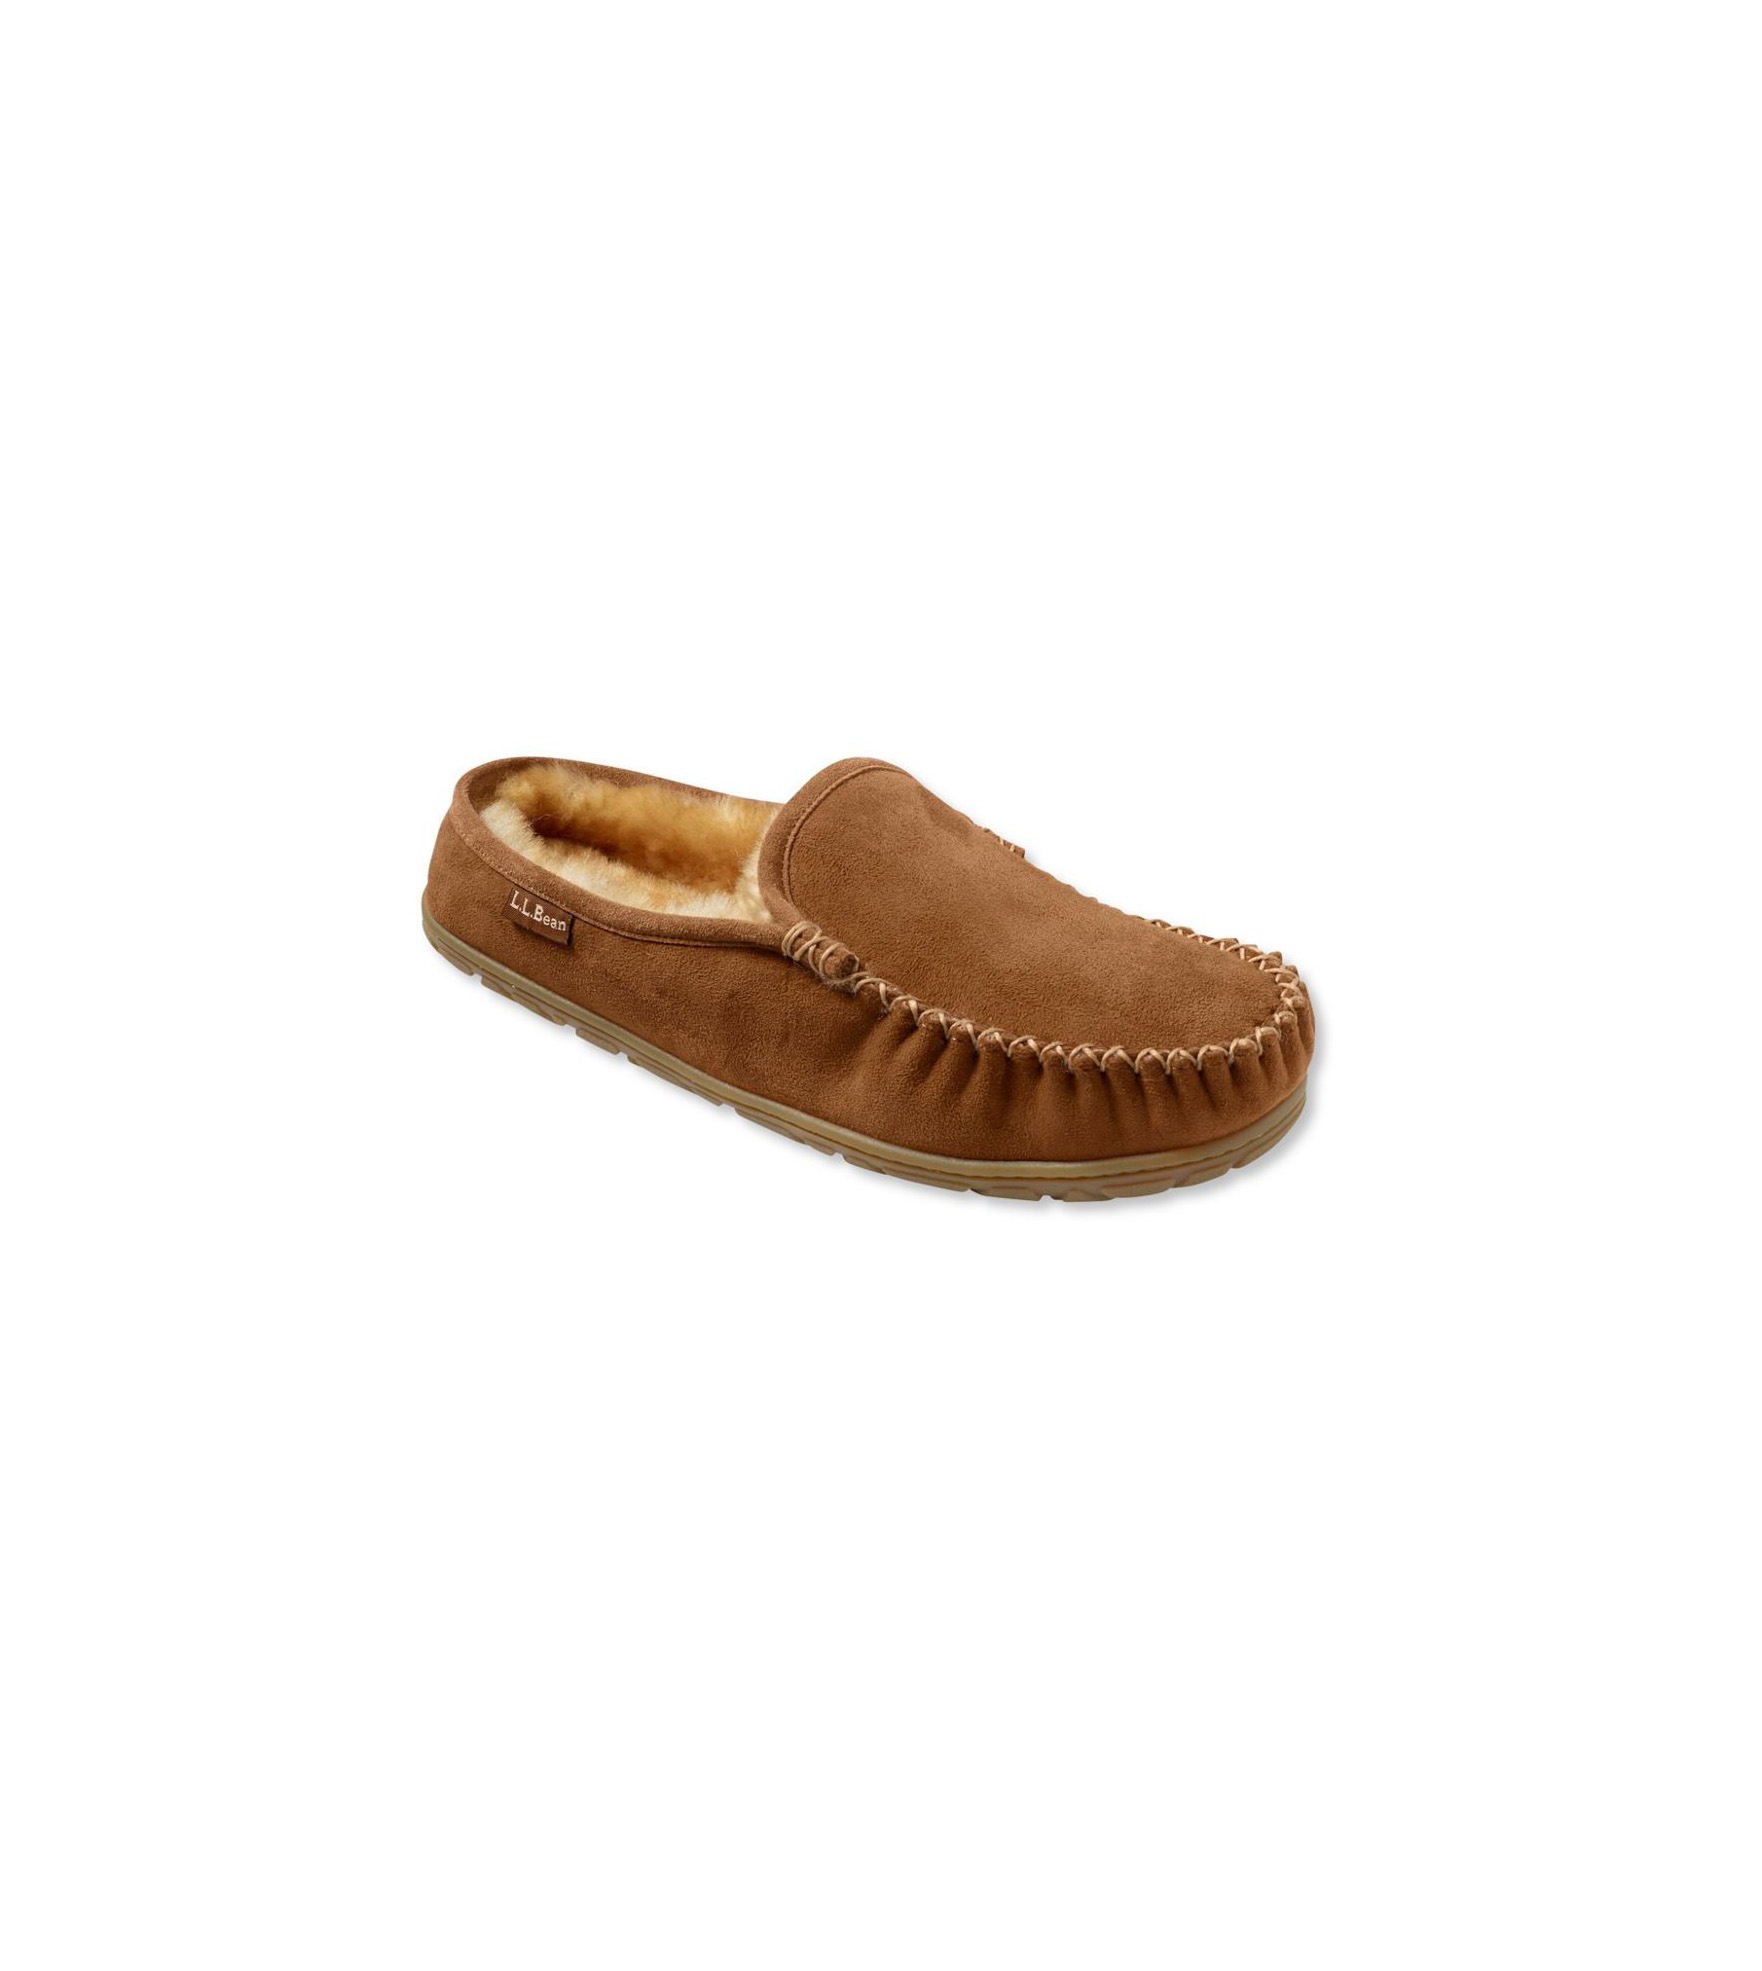 Valentines Gift Ideas for Men: L.L. Bean Slippers